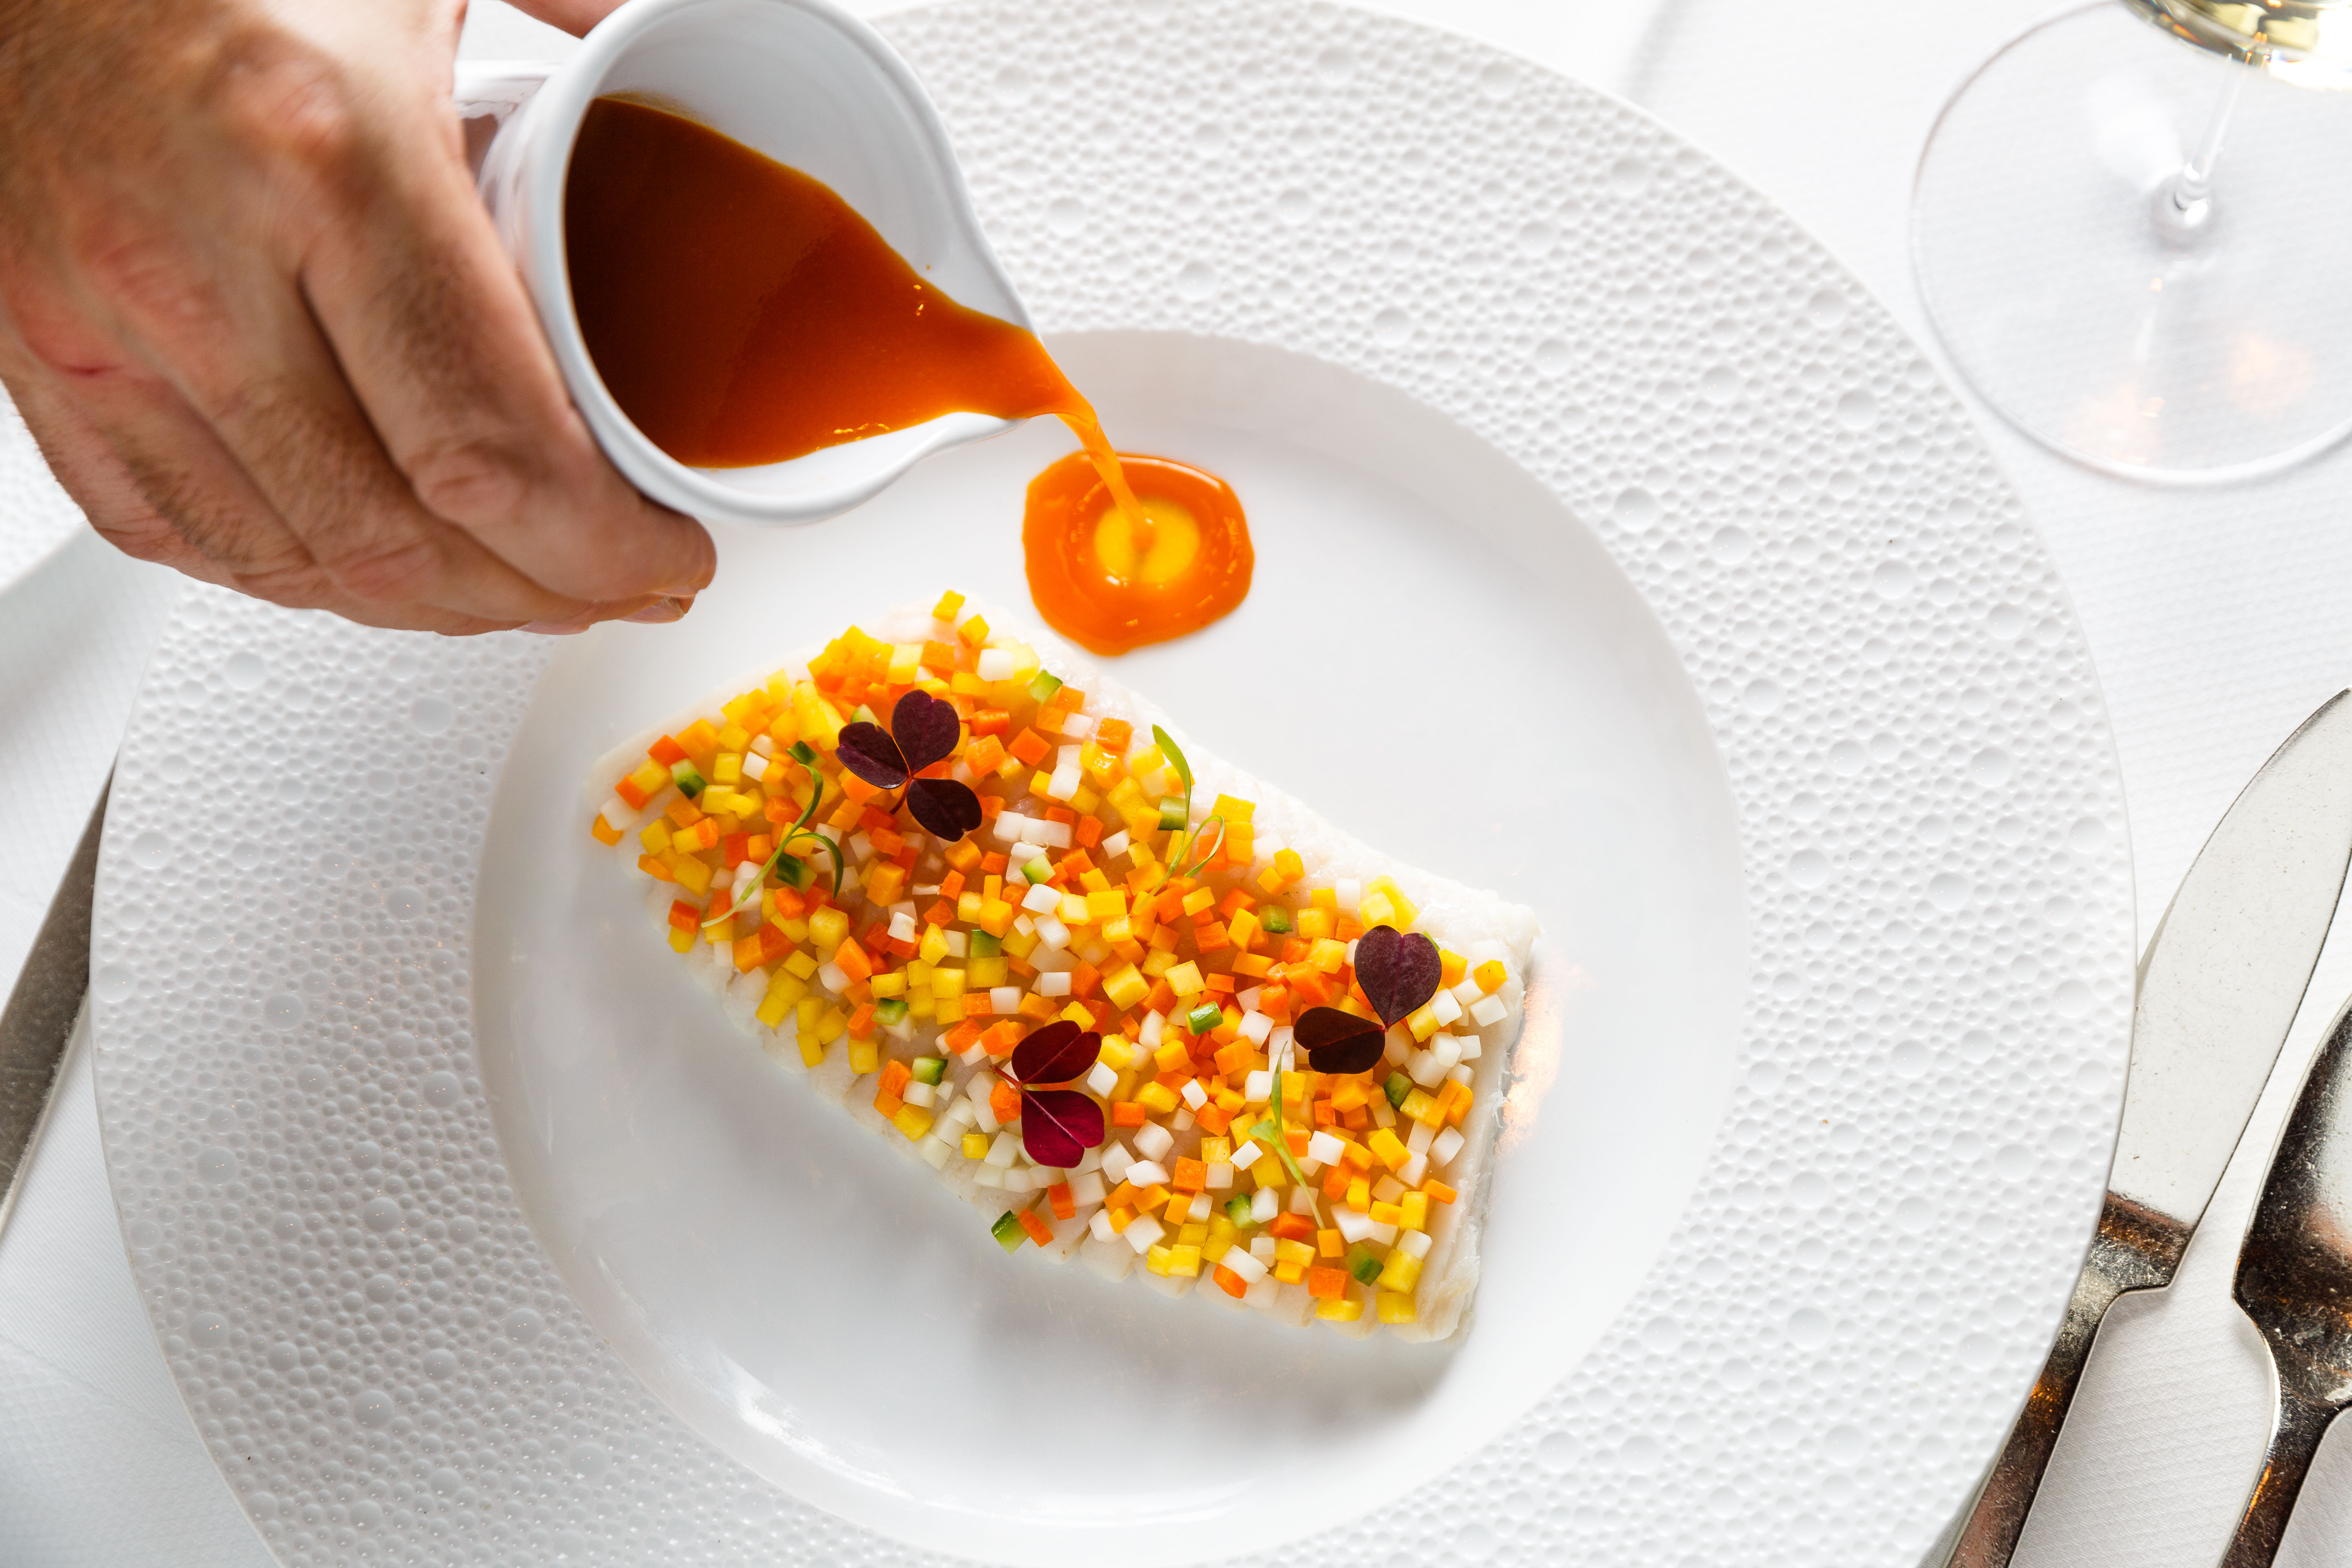 A server pours orange Thai shellfish broth onto a white plate, which holds a slide of poached skate covered by a multi-colored dice of papaya and squash